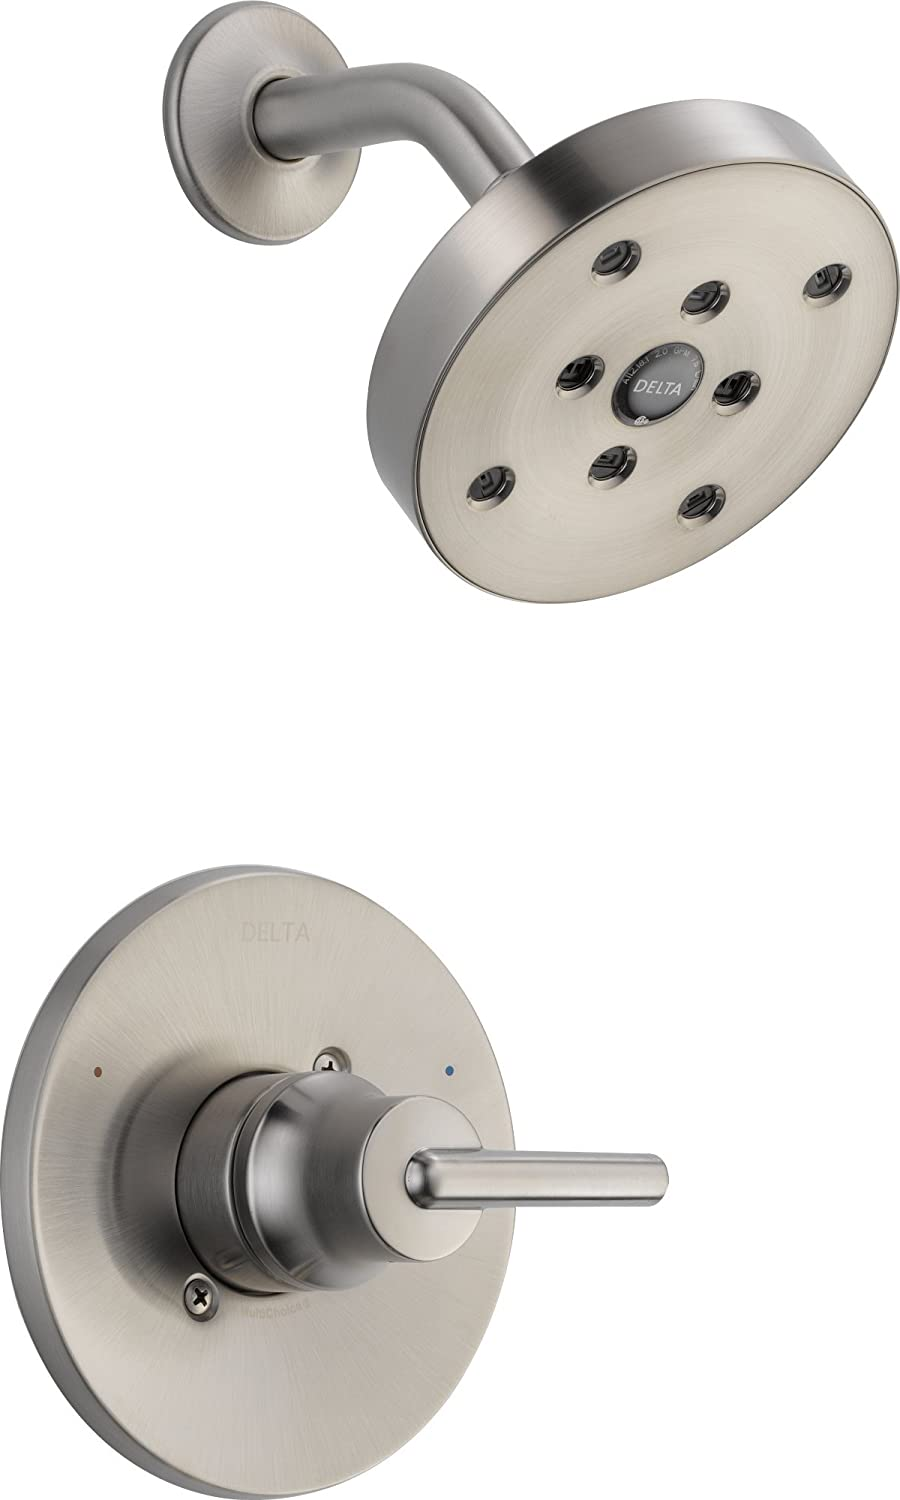 Delta T14259-SS Trinsic 14 Series Single-Function Shower Trim Kit ...